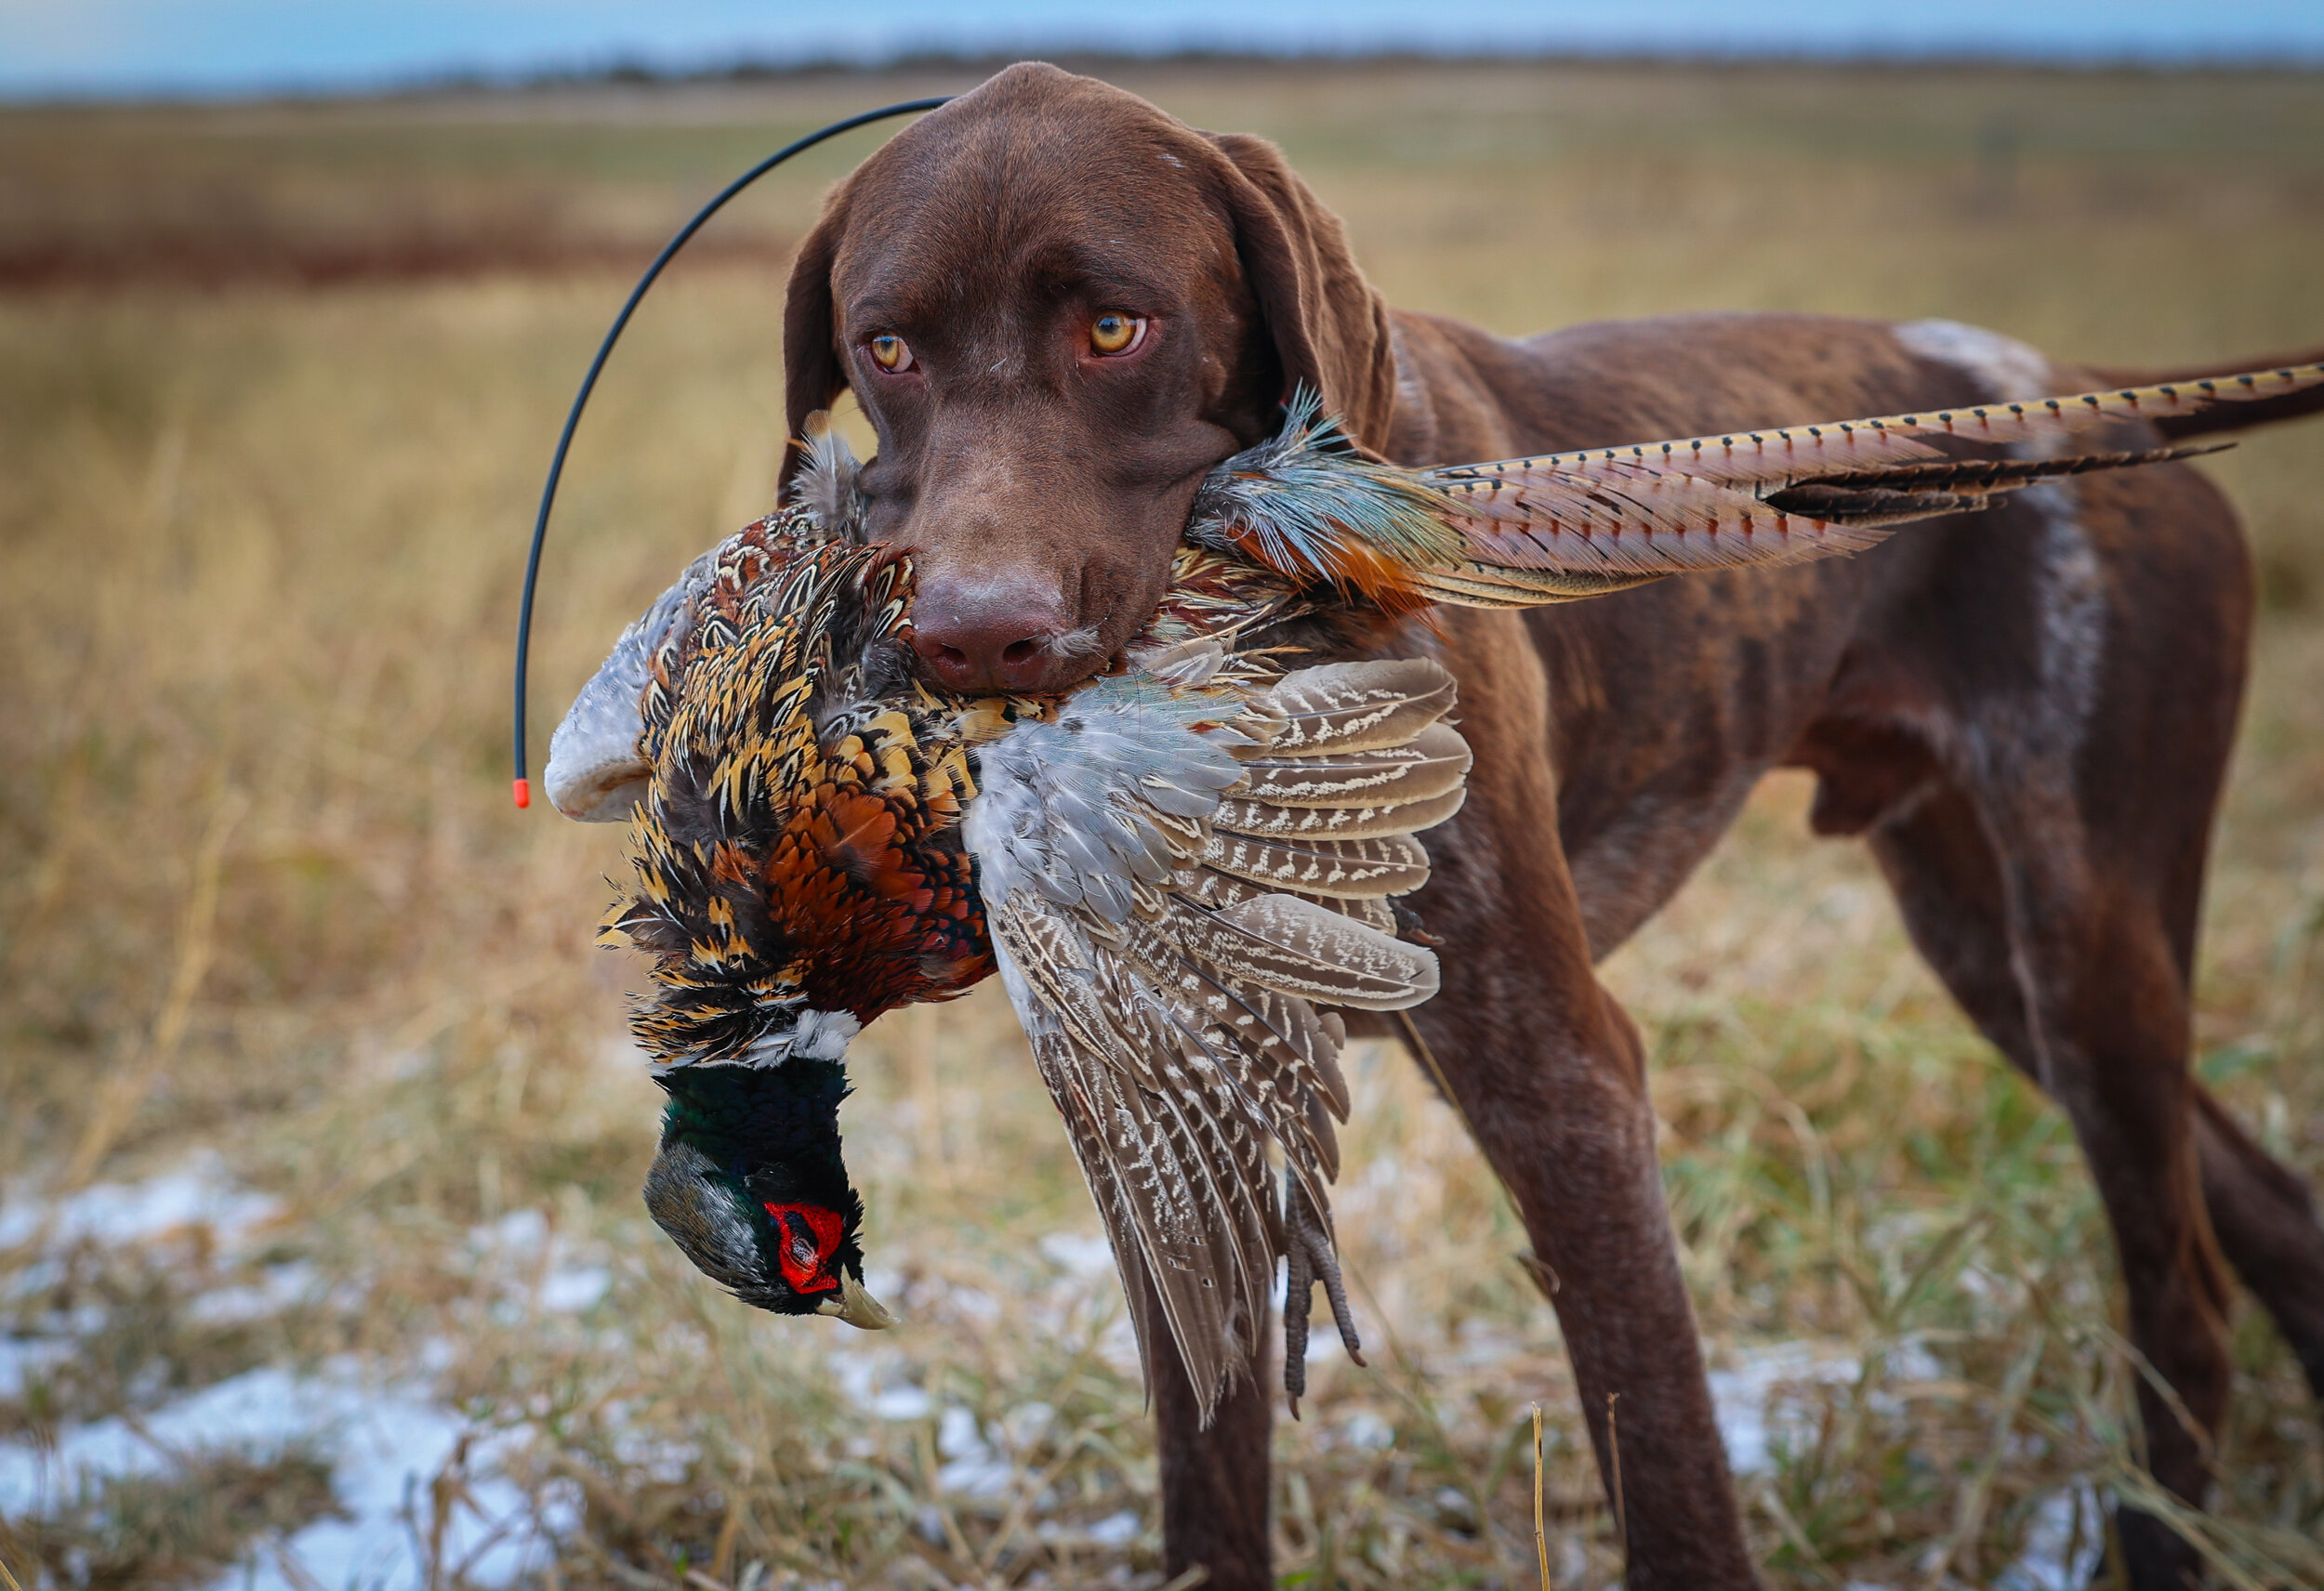 Chasing Pheasants: A South Dakota Cajun Invasion